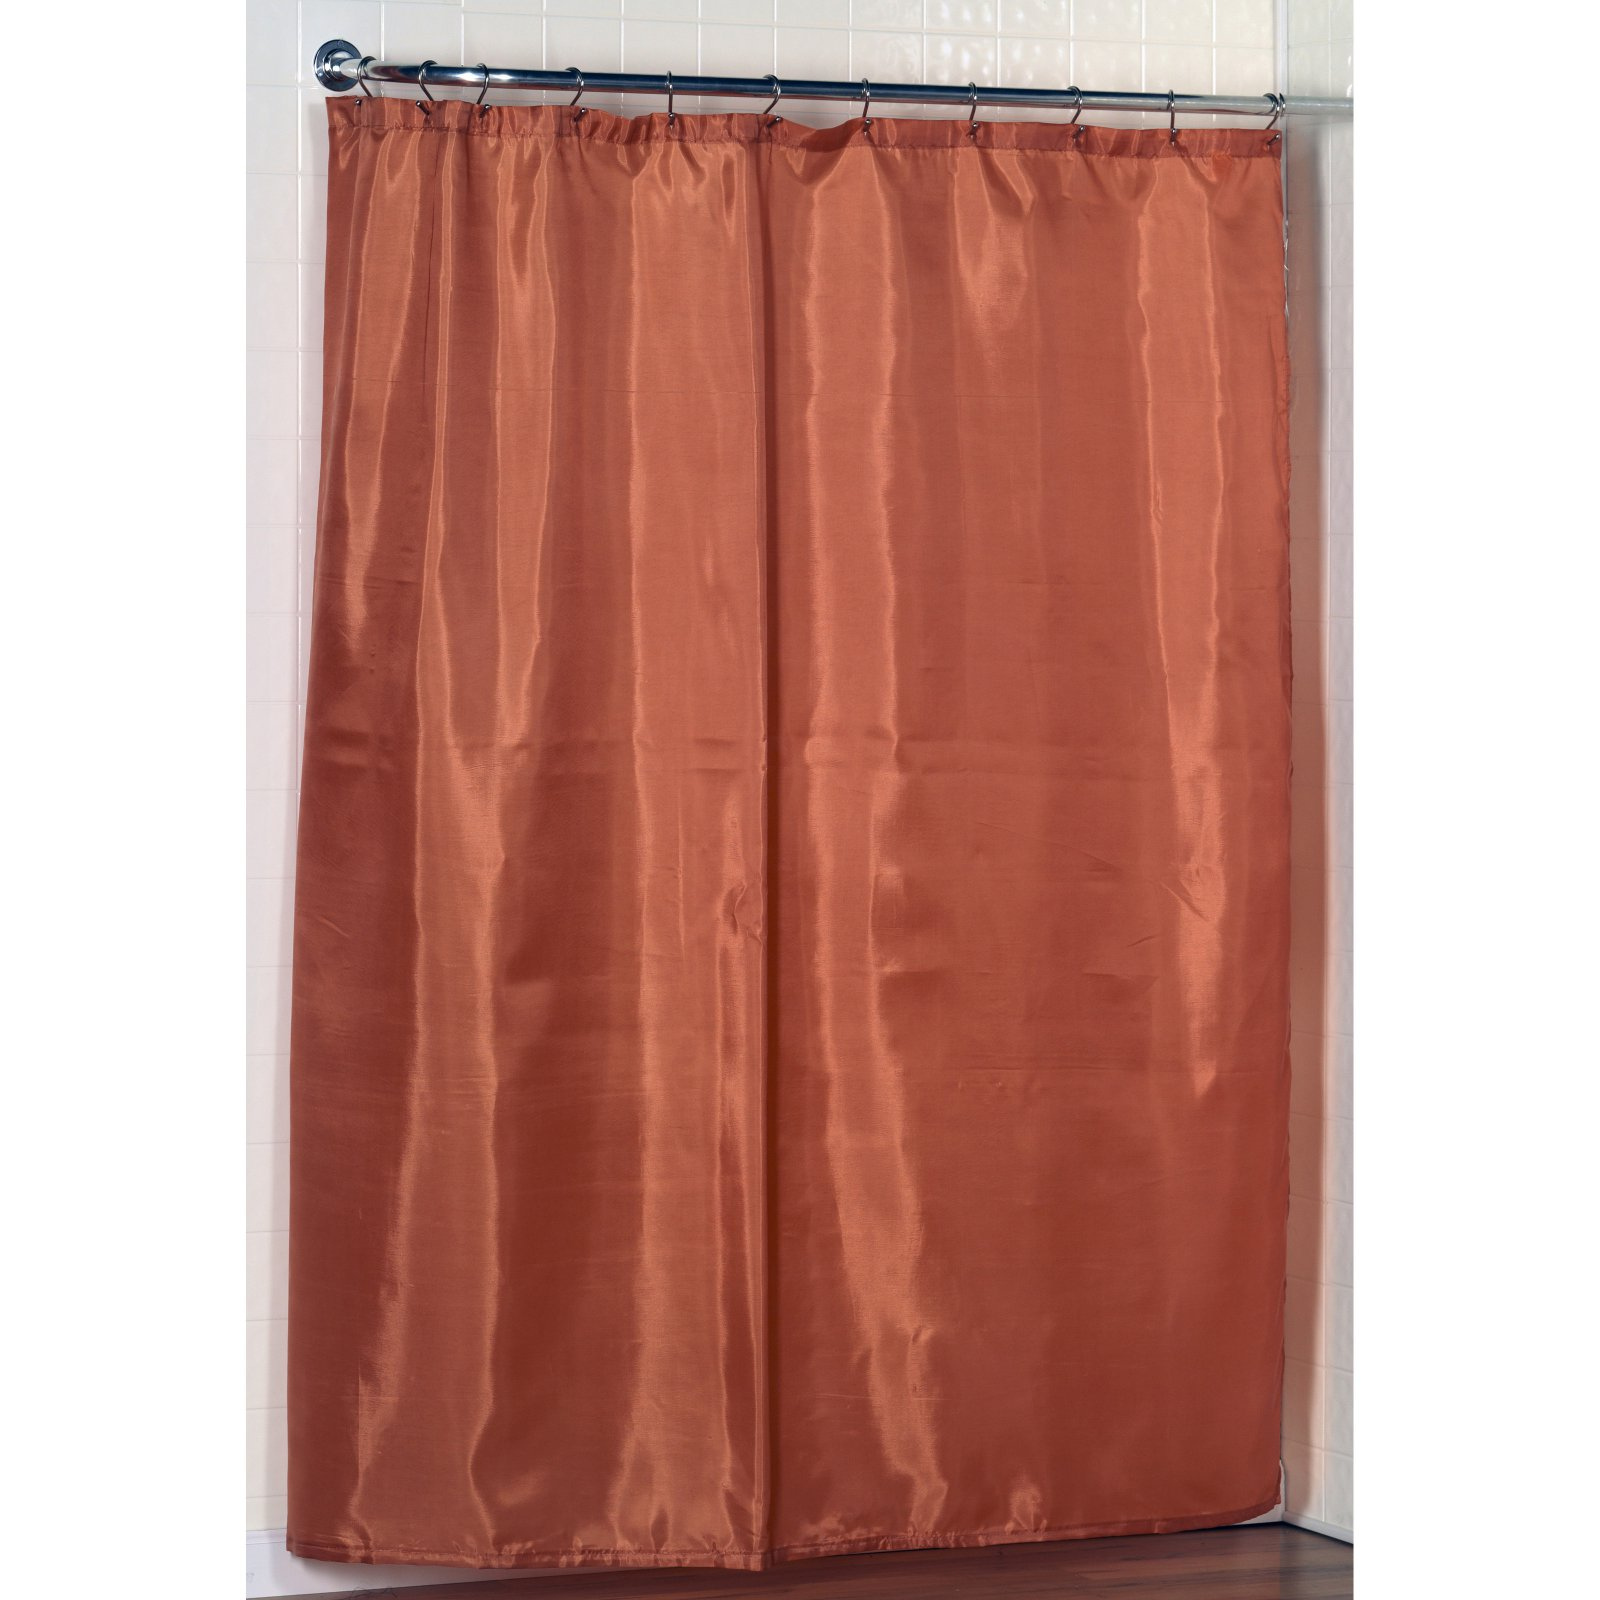 Standard Sized Polyester Fabric Shower Curtain Liner In Tangerine Walmart Com Walmart Com